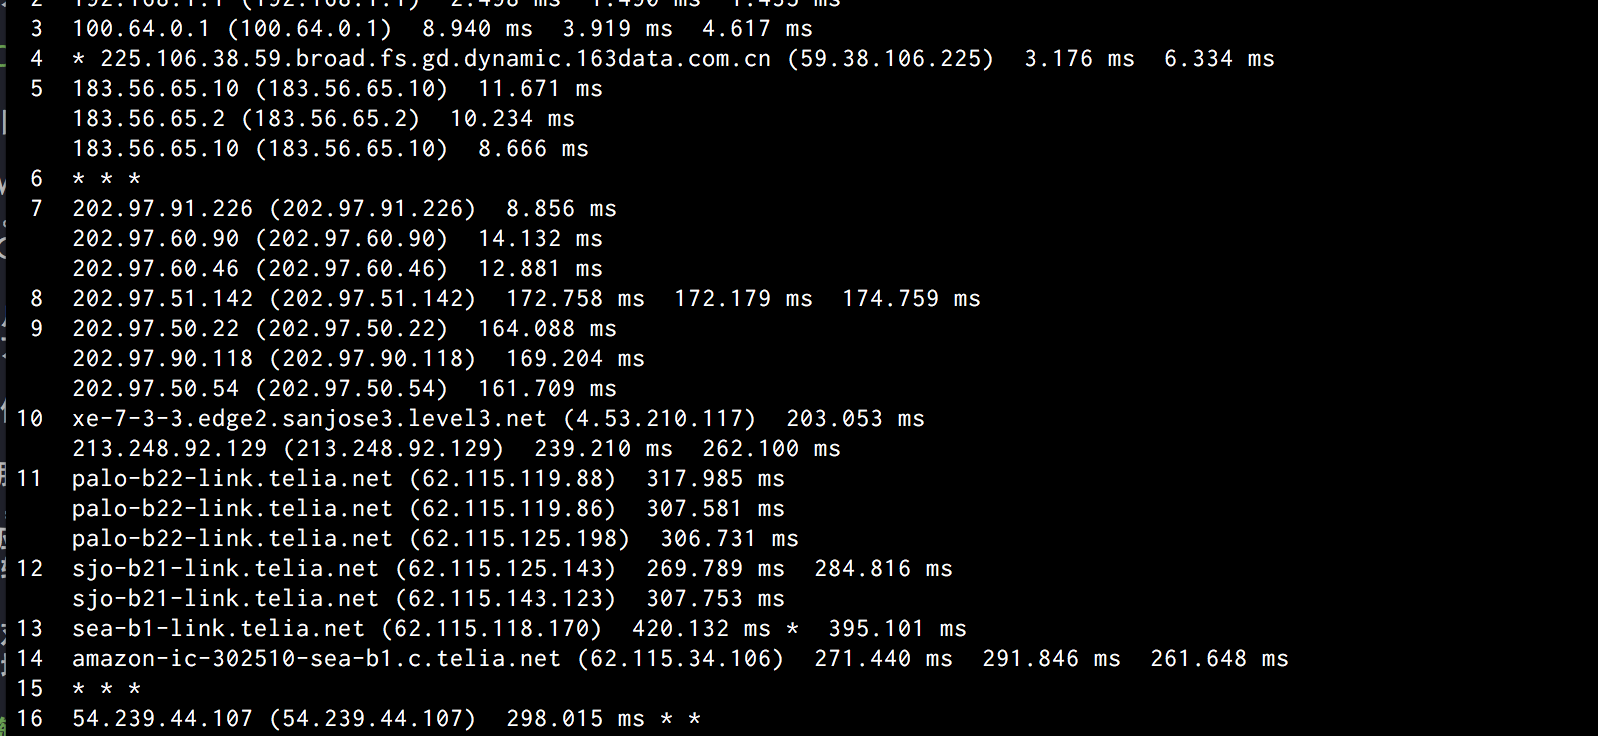 traceroute 结果